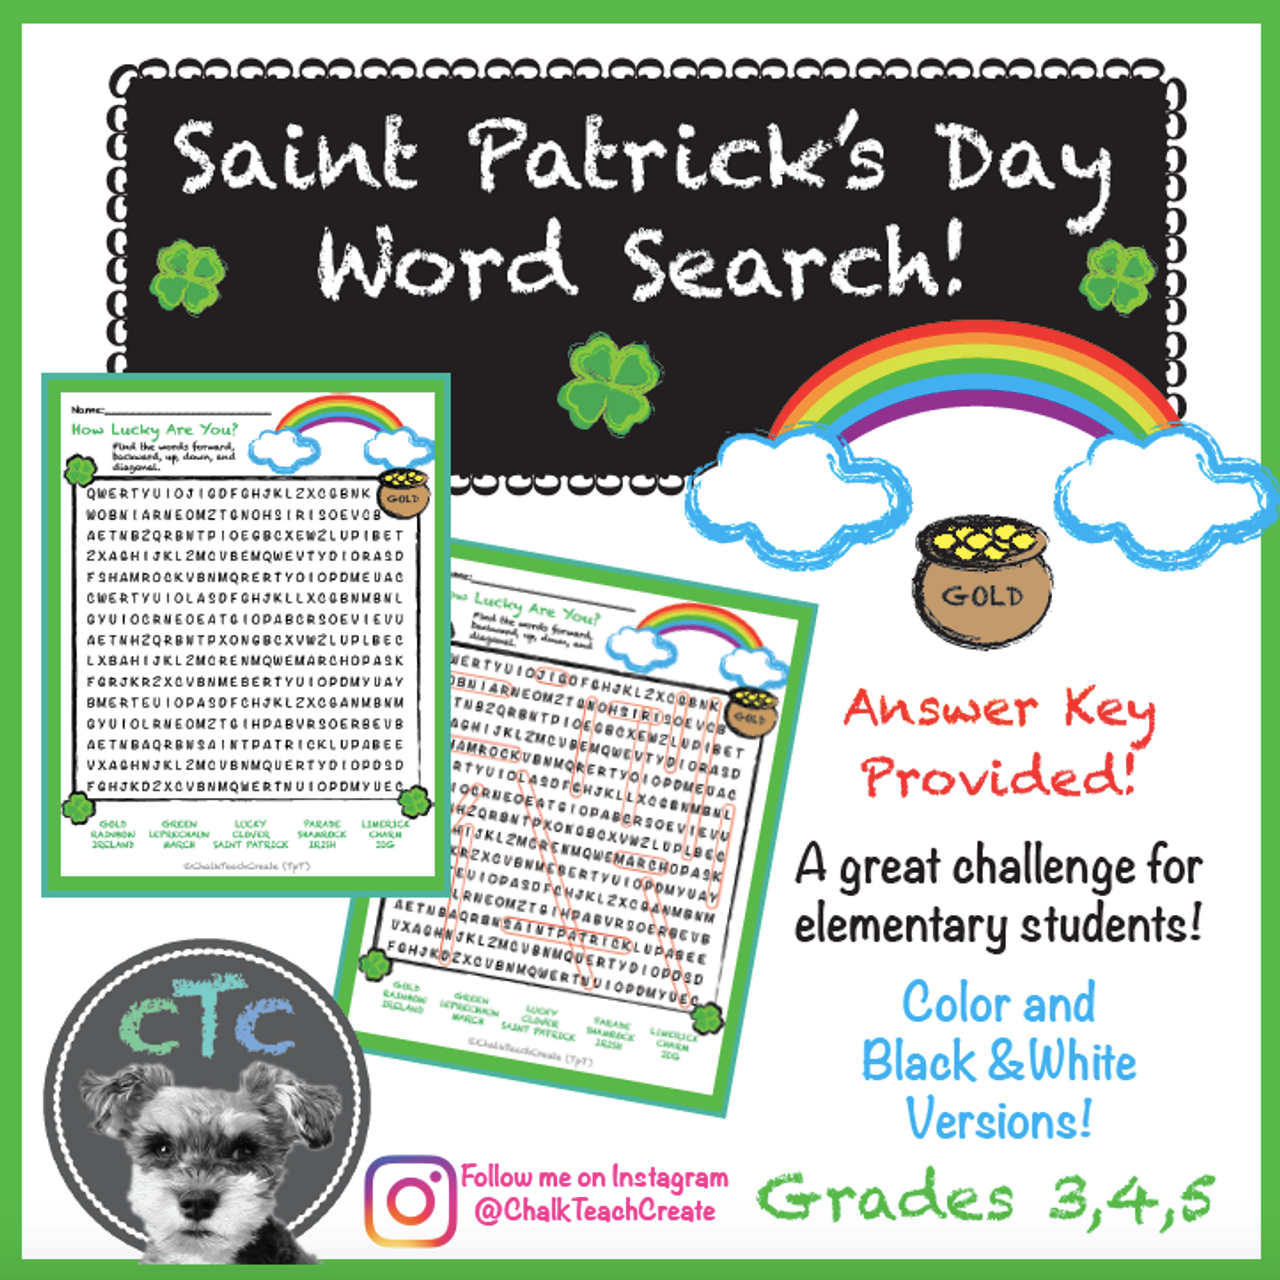 St. Patrick's Day Word Search!